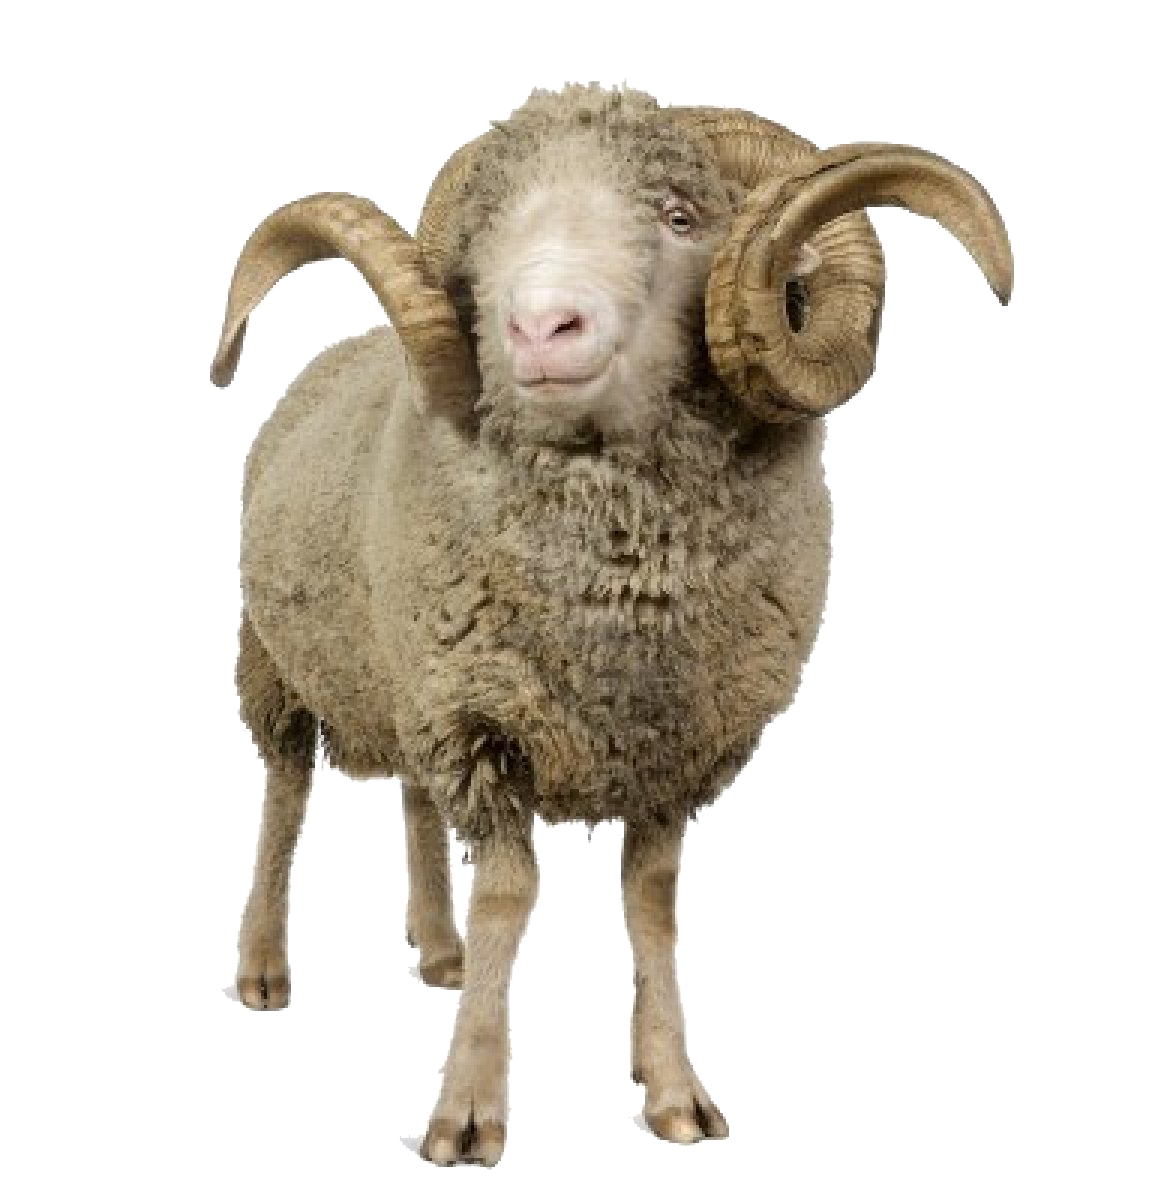 Png Background Sheep Transparent image #23162